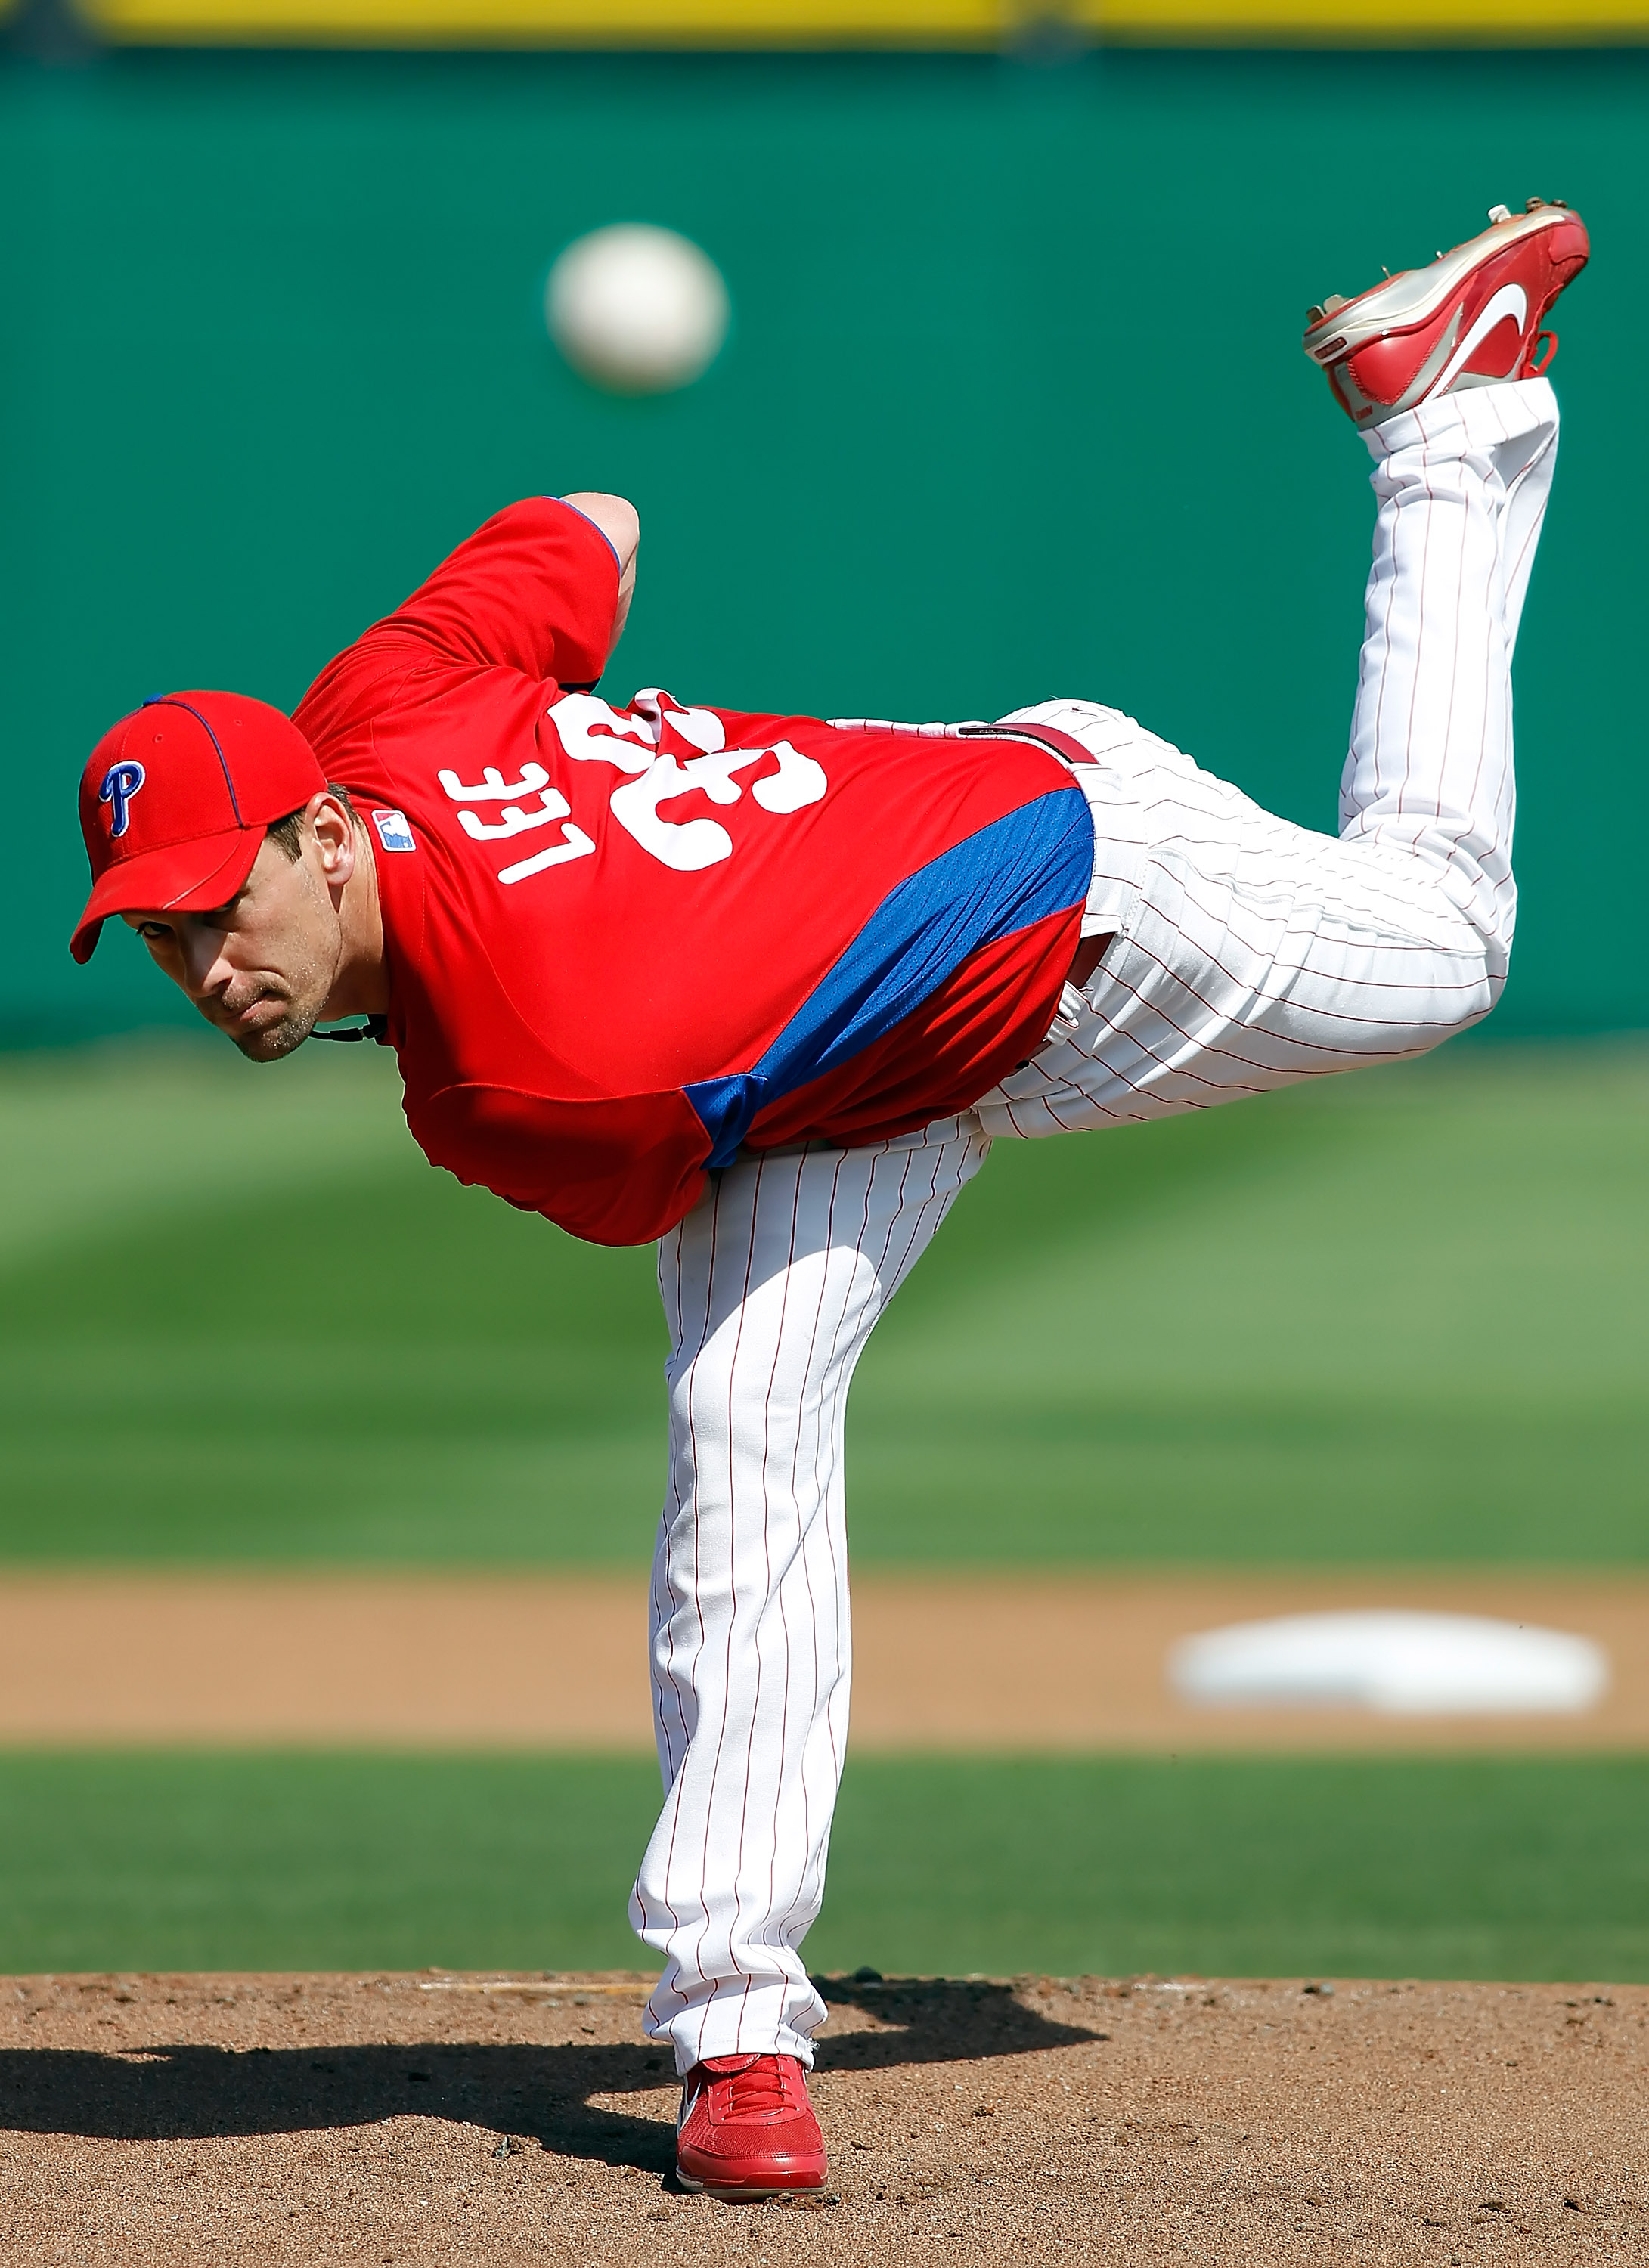 CLEARWATER, FL - MARCH 06:  Pitcher Cliff Lee #33 of the Philadelphia Phillies pitches against the Tampa Bay Rays during a Grapefruit League Spring Training Game at Bright House Field on March 6, 2011 in Sarasota, Florida.  (Photo by J. Meric/Getty Images